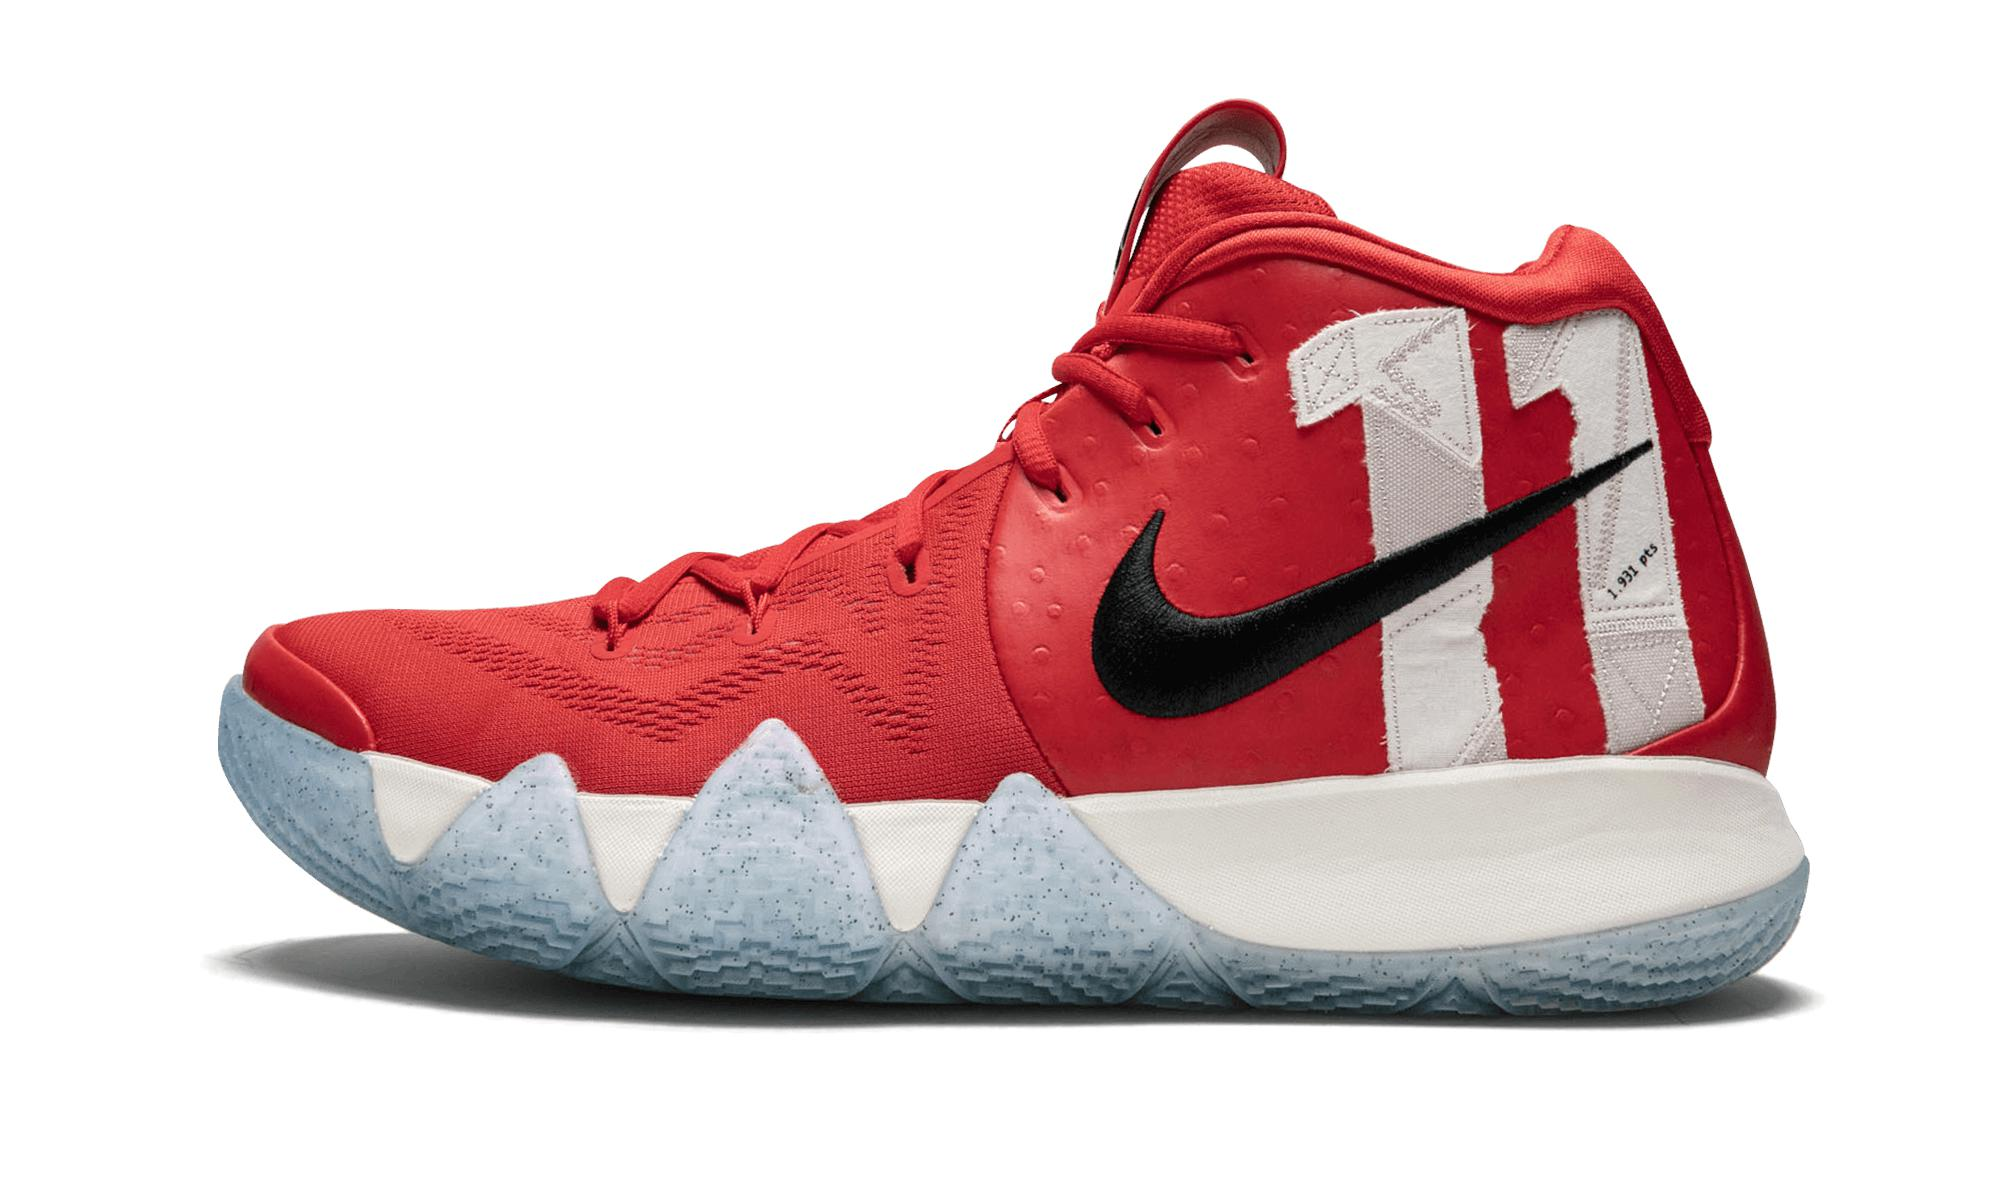 62c80856198d Lyst - Nike Kyrie 4 Tv Pe 16 in Red for Men - Save 20%